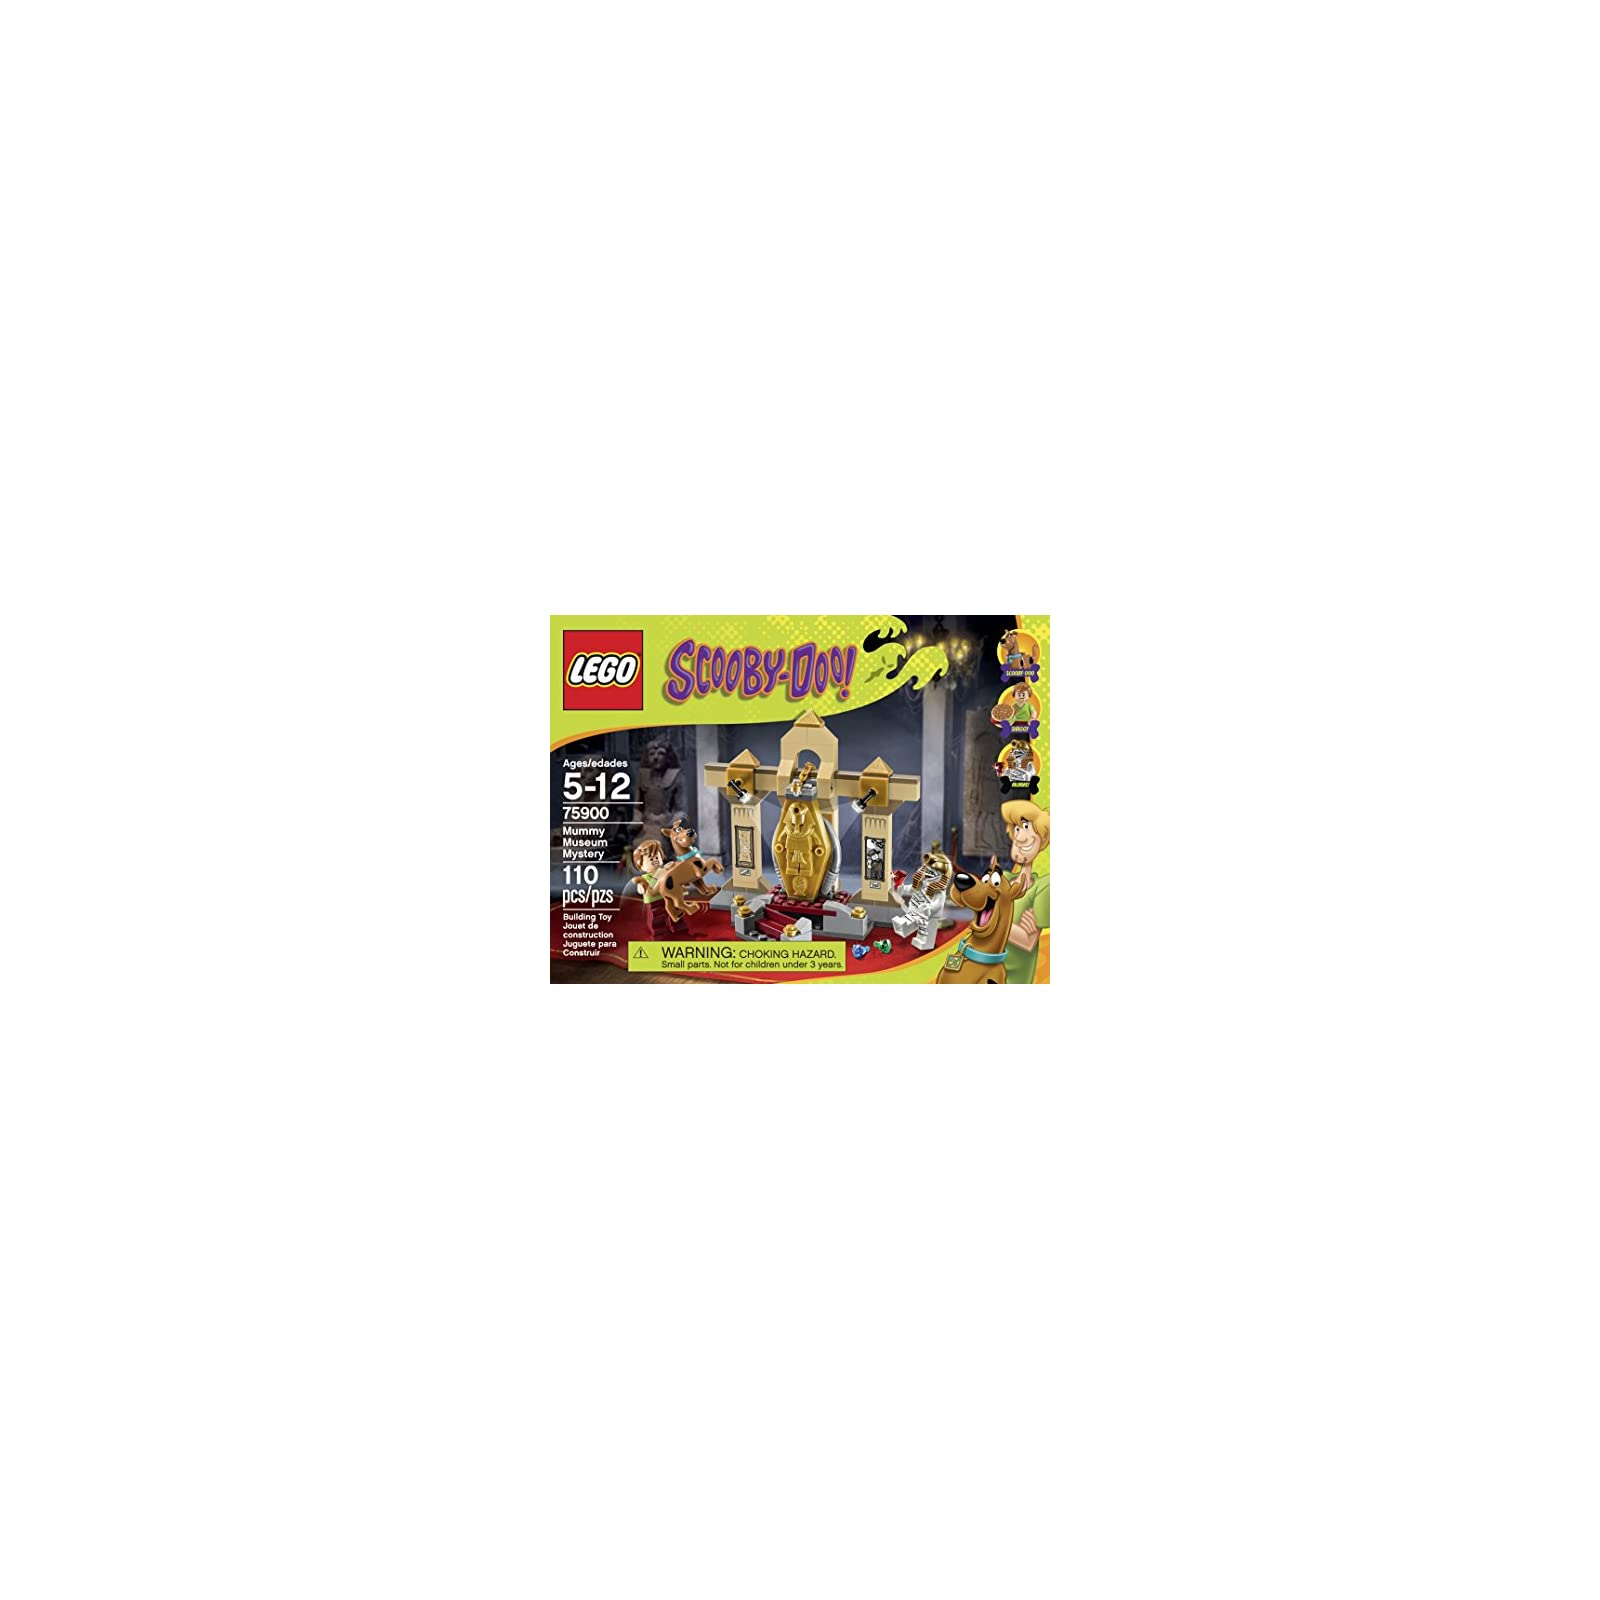 LEGO Scooby Doo 75900 Mummy Museum Mystery Building Kit